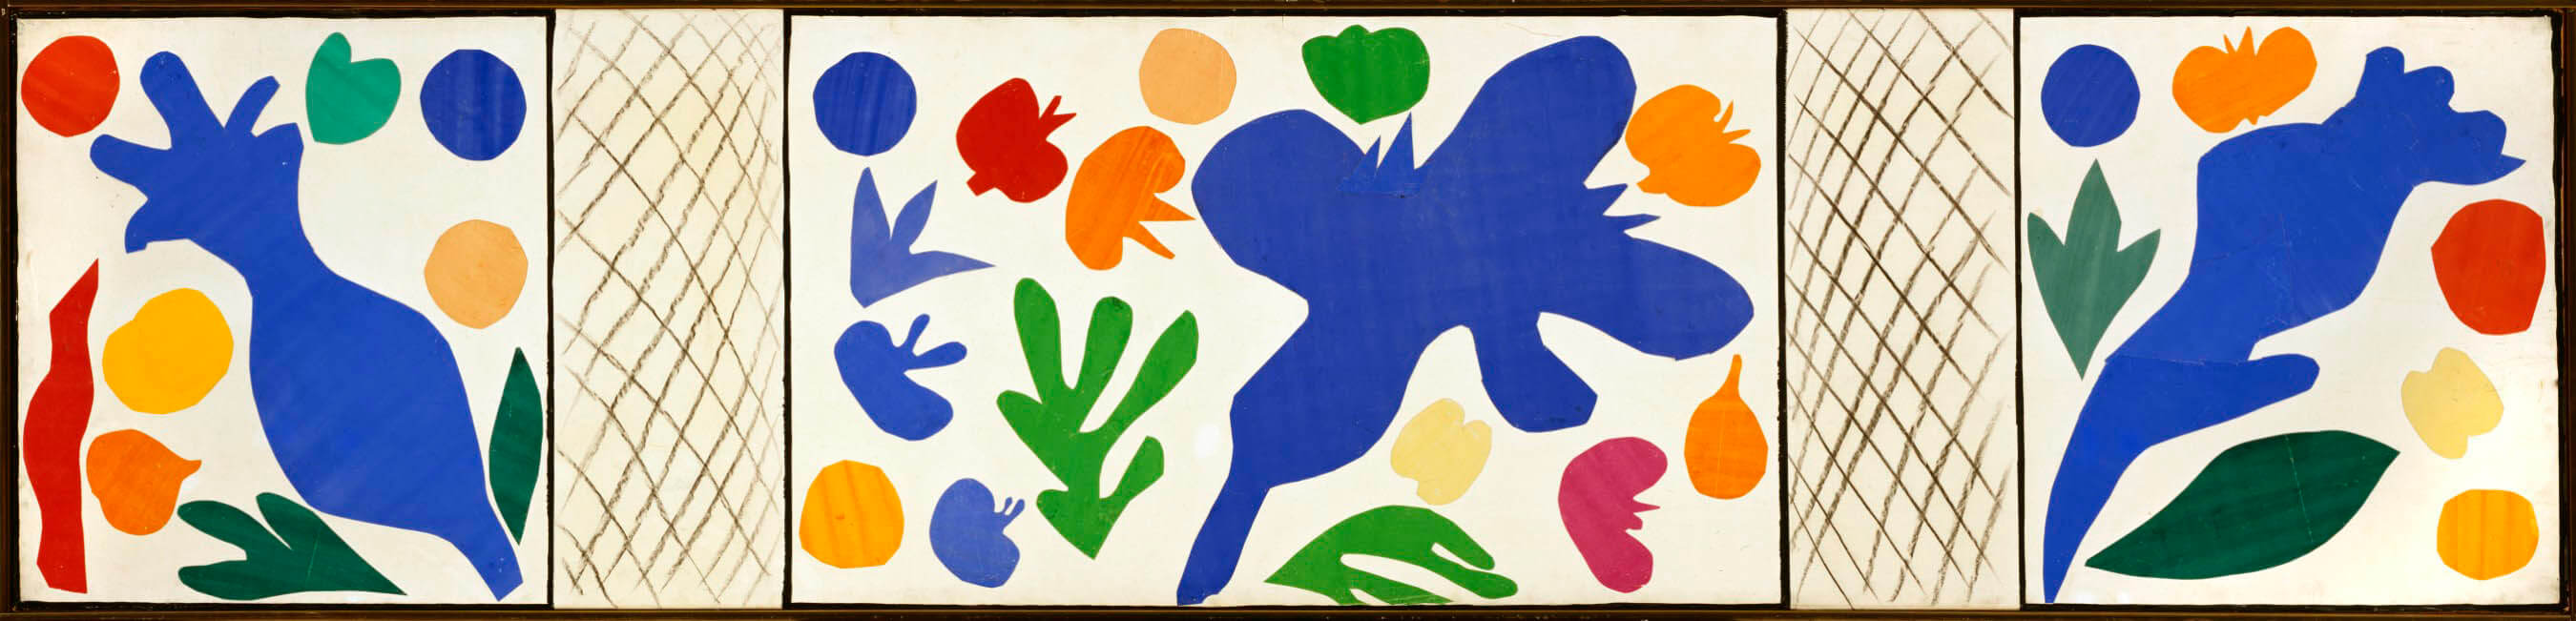 Matisse - The Wild Poppies, 1953 - print